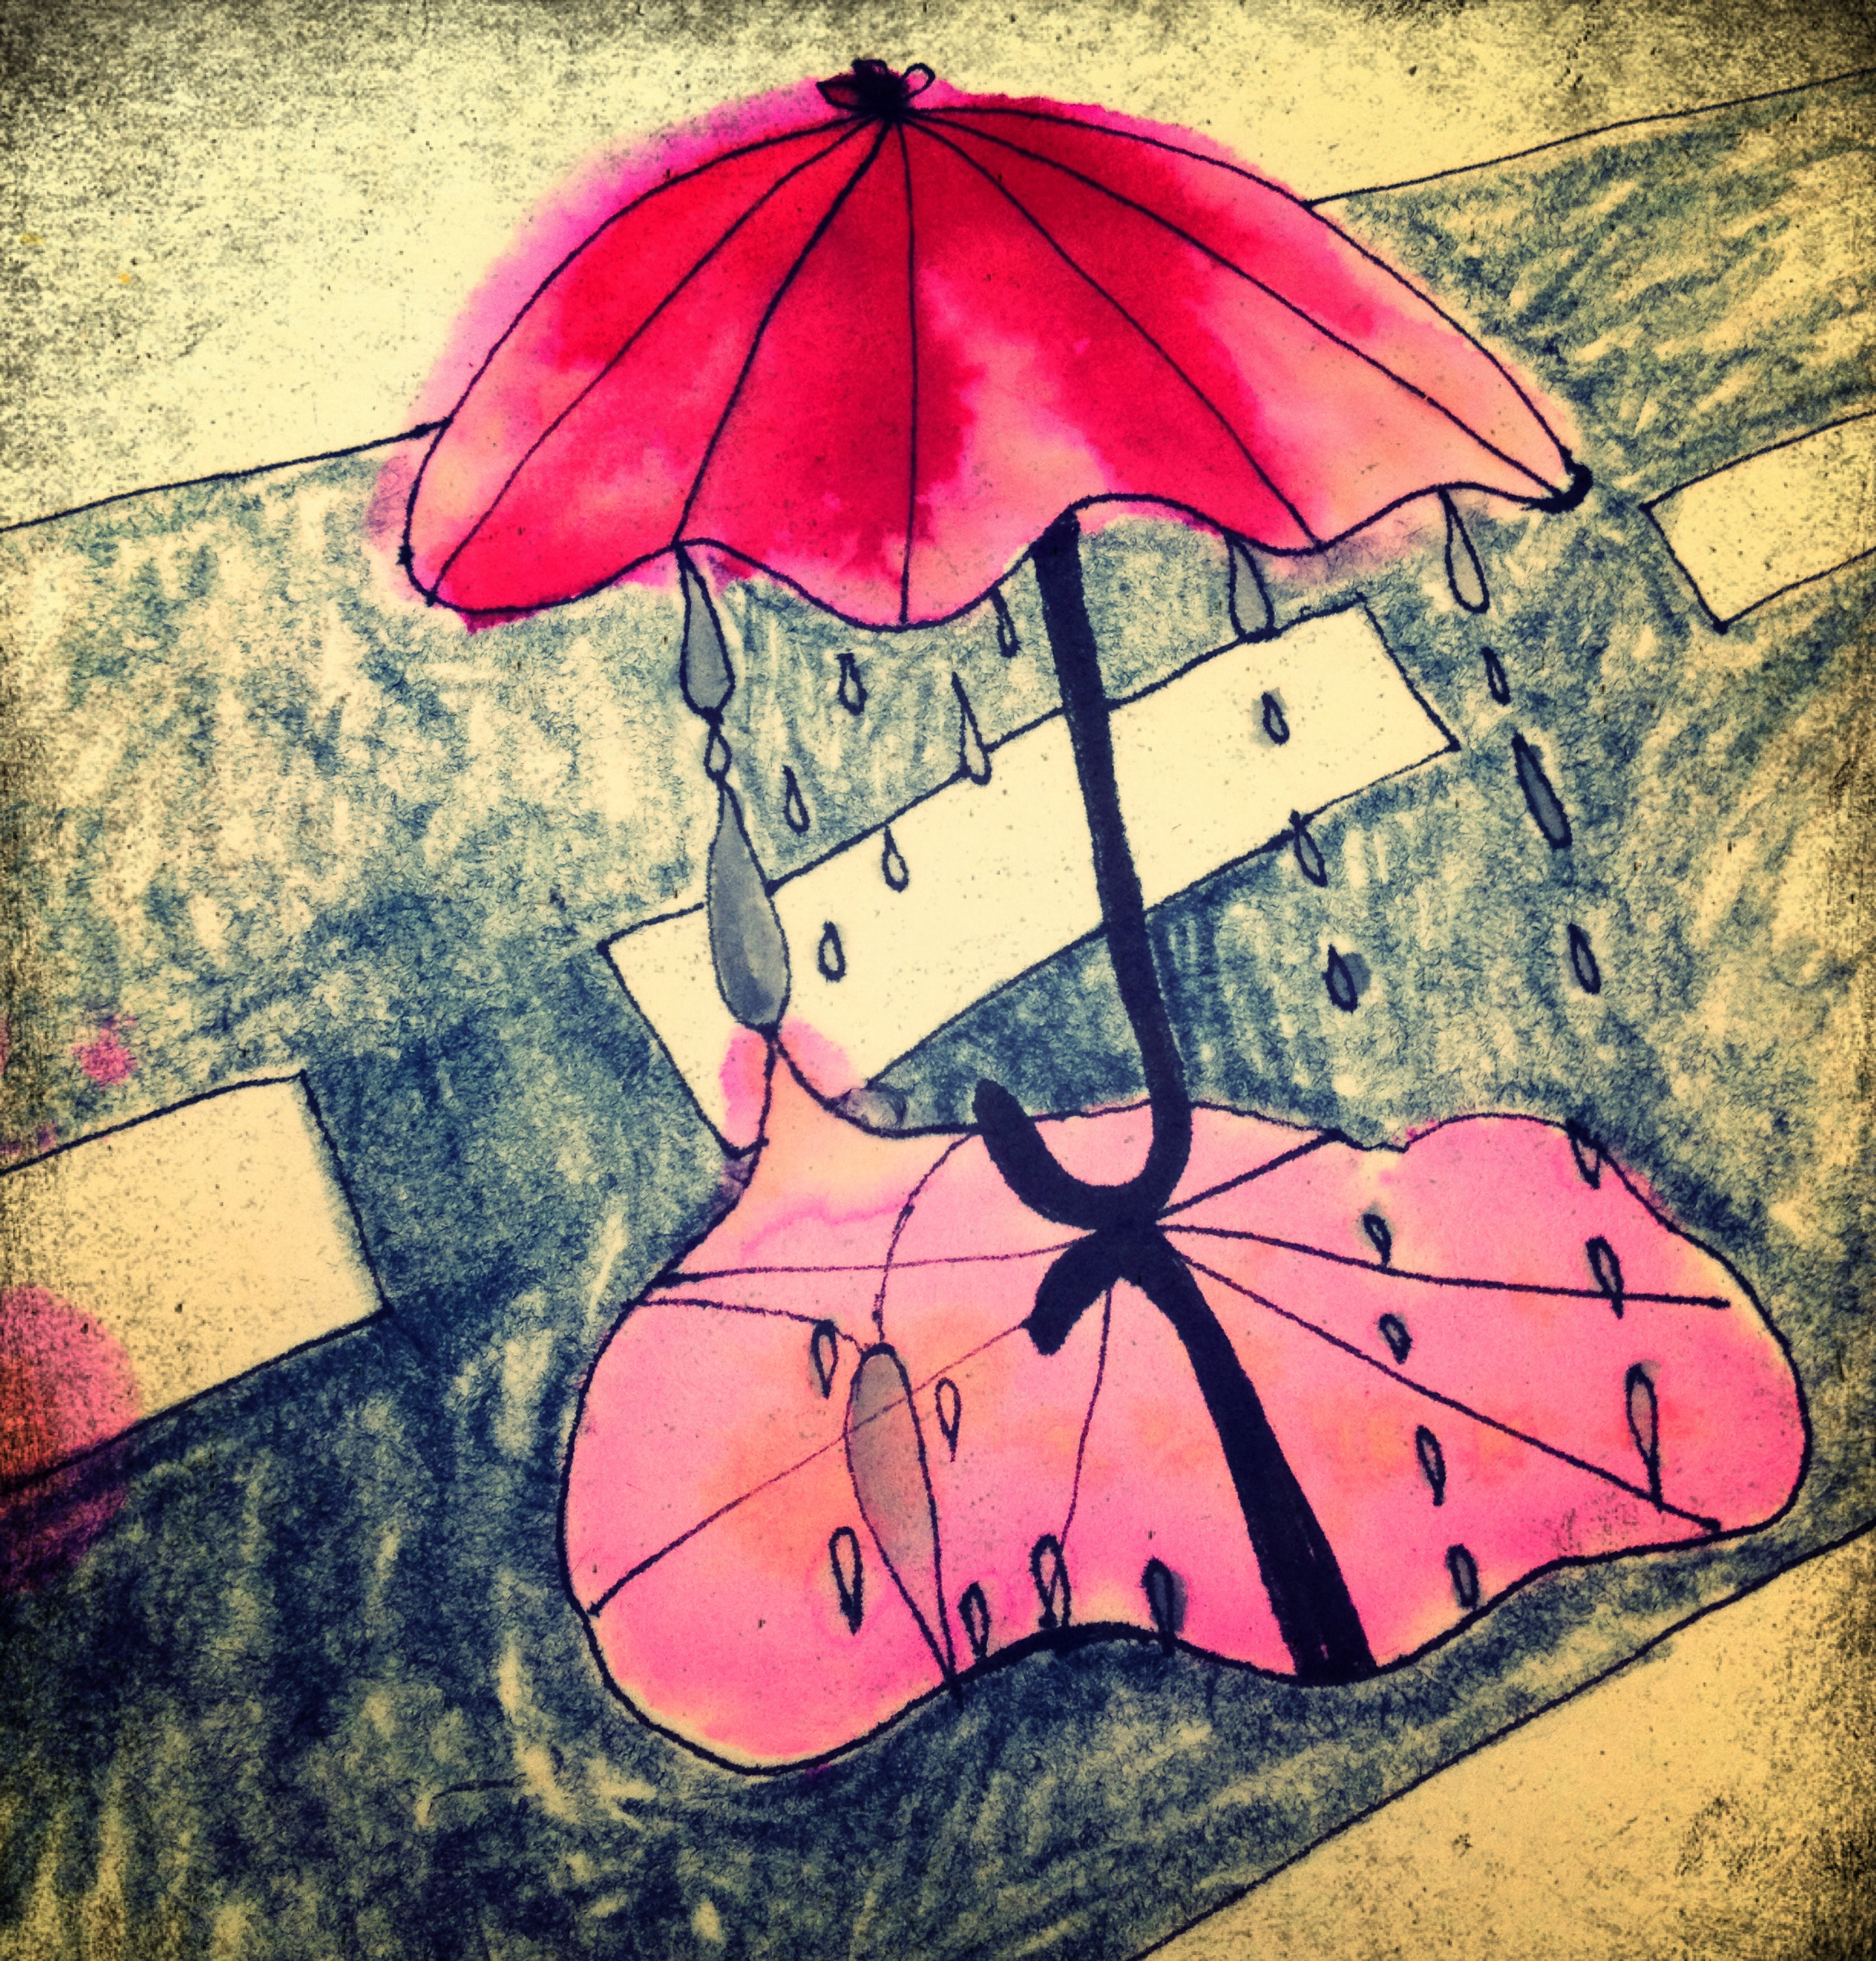 Crying Umbrella